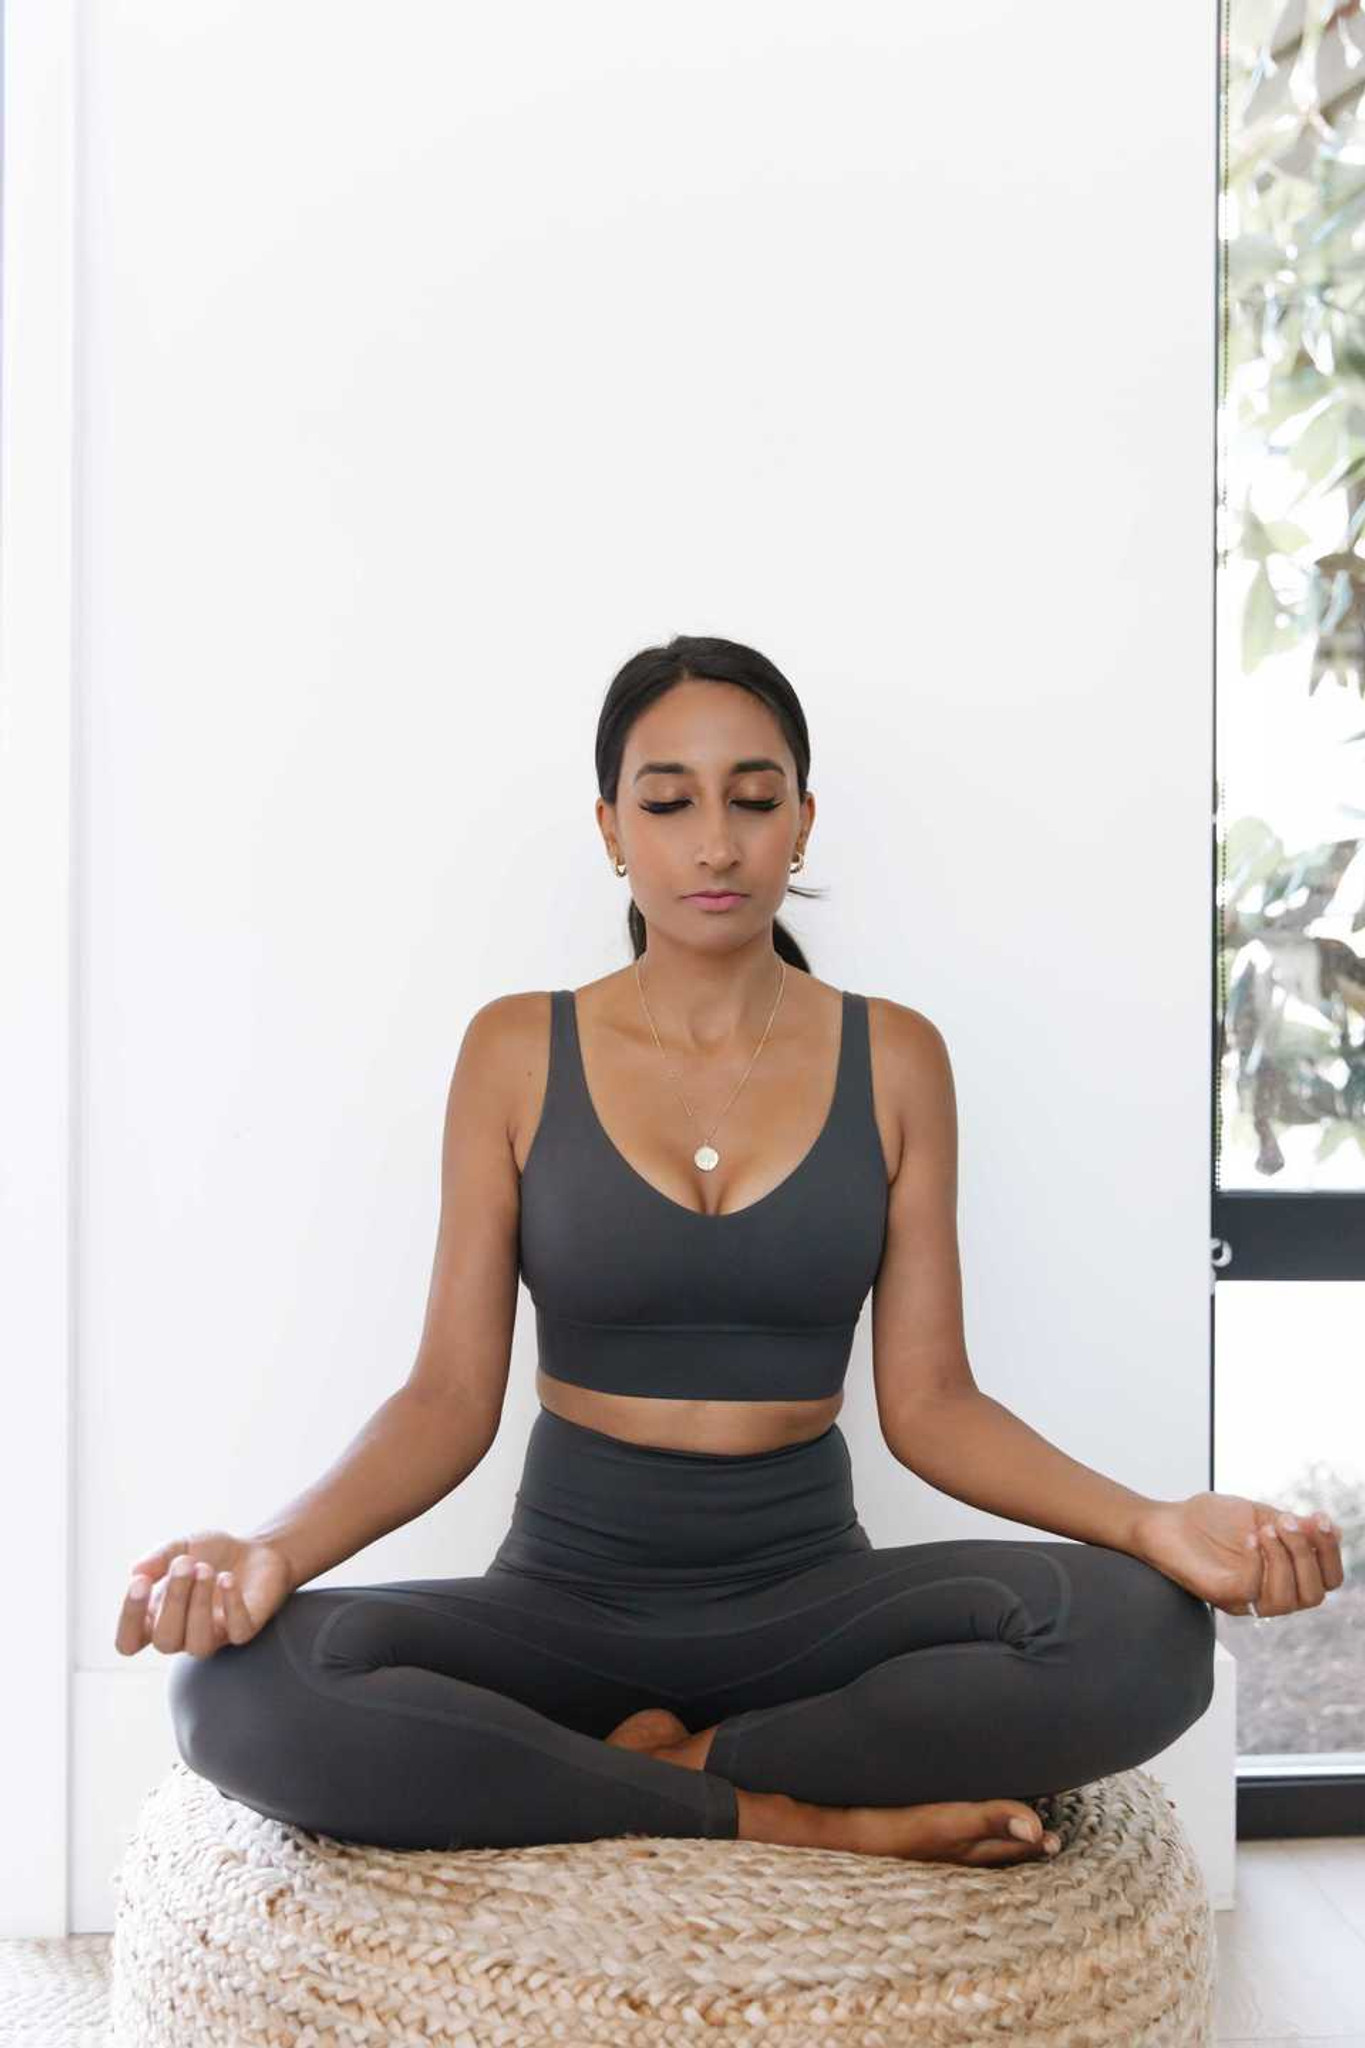 BASICS by PRIV is here! Fashionable yet functional, everything you need to look good while working out or just like you're going to work out. Designed by our team for you, every piece is functional, technical and comfortable! You're going to need a piece for every day of the week. The best pair of leggings you will ever own... for real! These super soft, skin like feel leggings feature a 4 way stretch fabric with a high waist to smooth and a contoured fit to lift your best ass-ets.